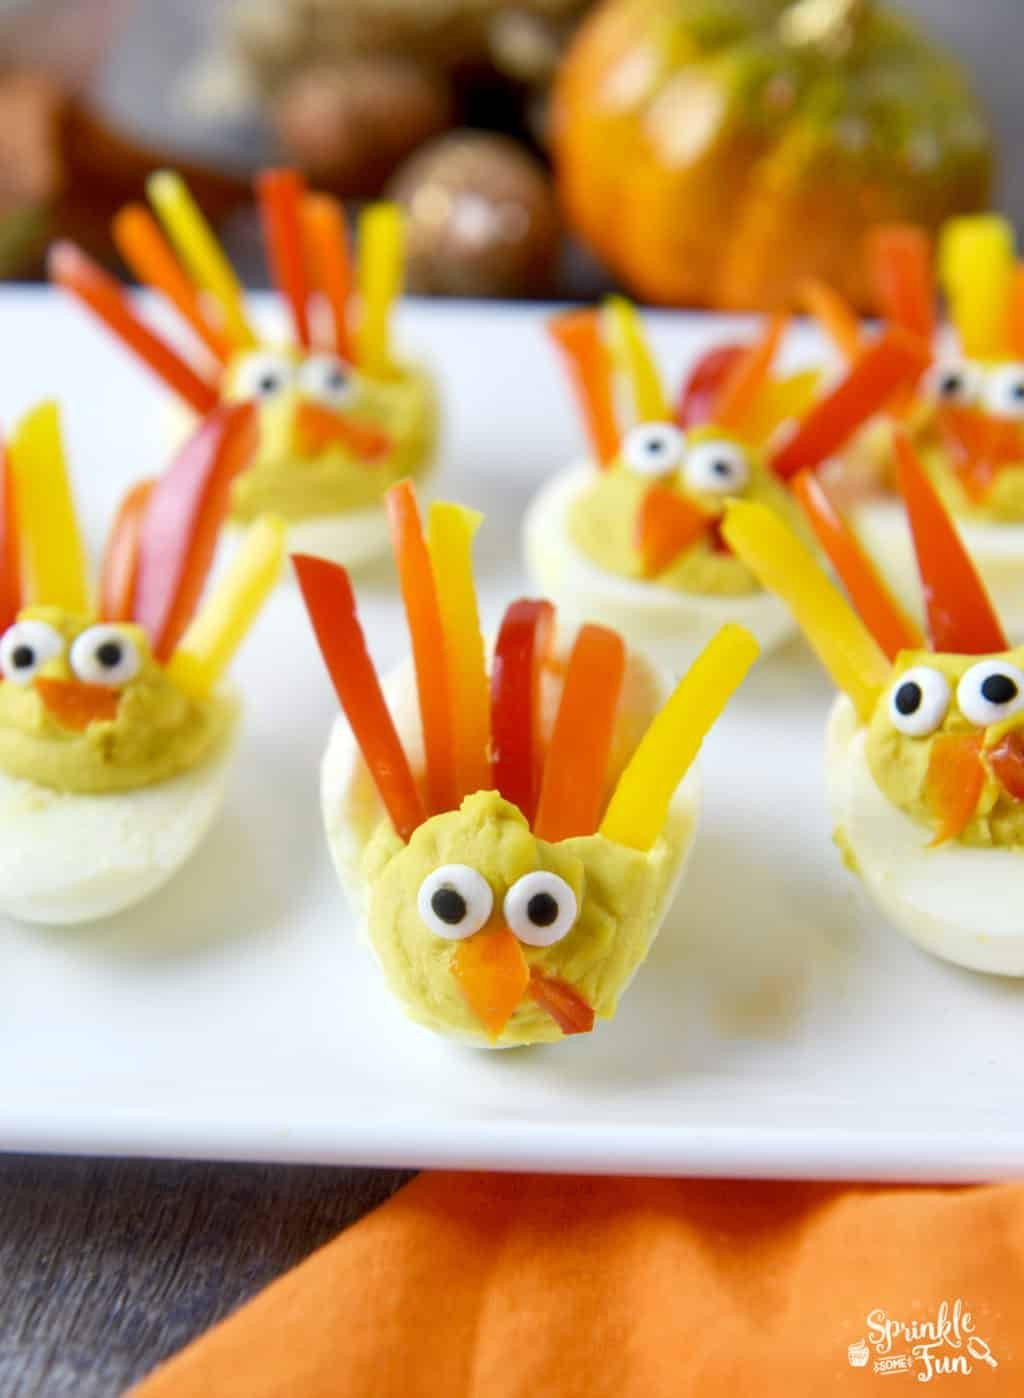 Deviled Eggs Thanksgiving  Deviled Egg Turkeys Sprinkle Some Fun